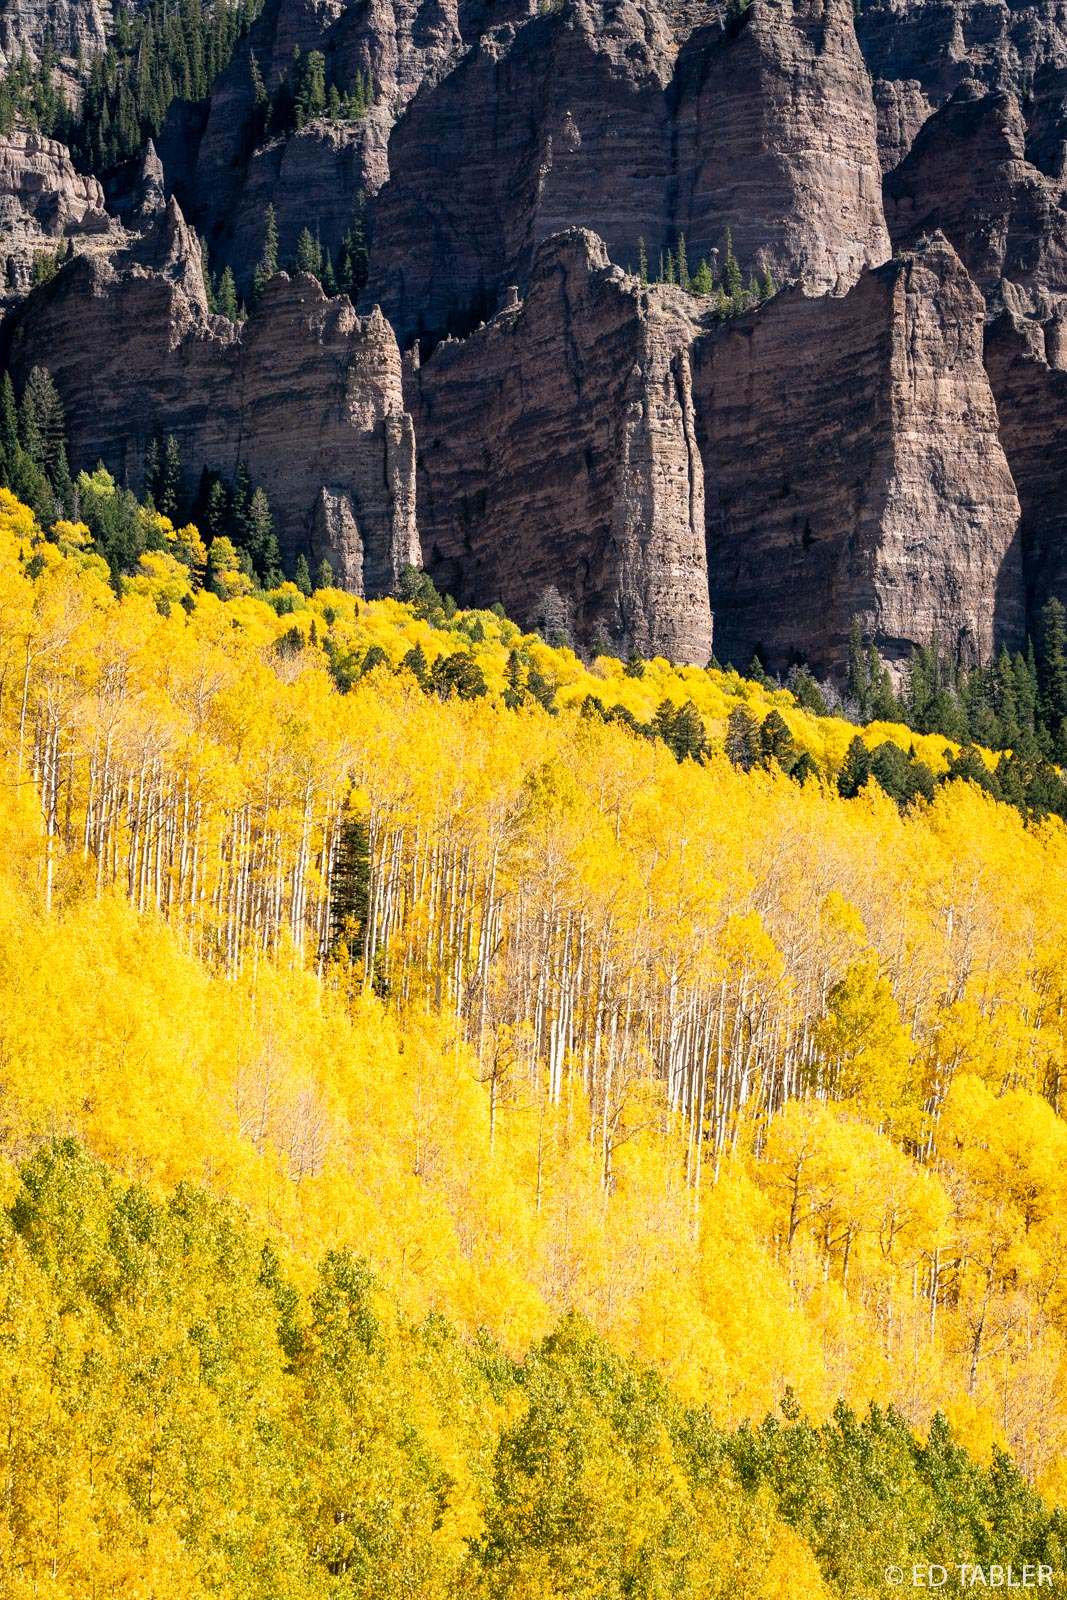 Near Owl Creek Pass, the green and yellow aspen, the lone pine tree, and the abrupt, dark pinnacles of High Mesa in the background...